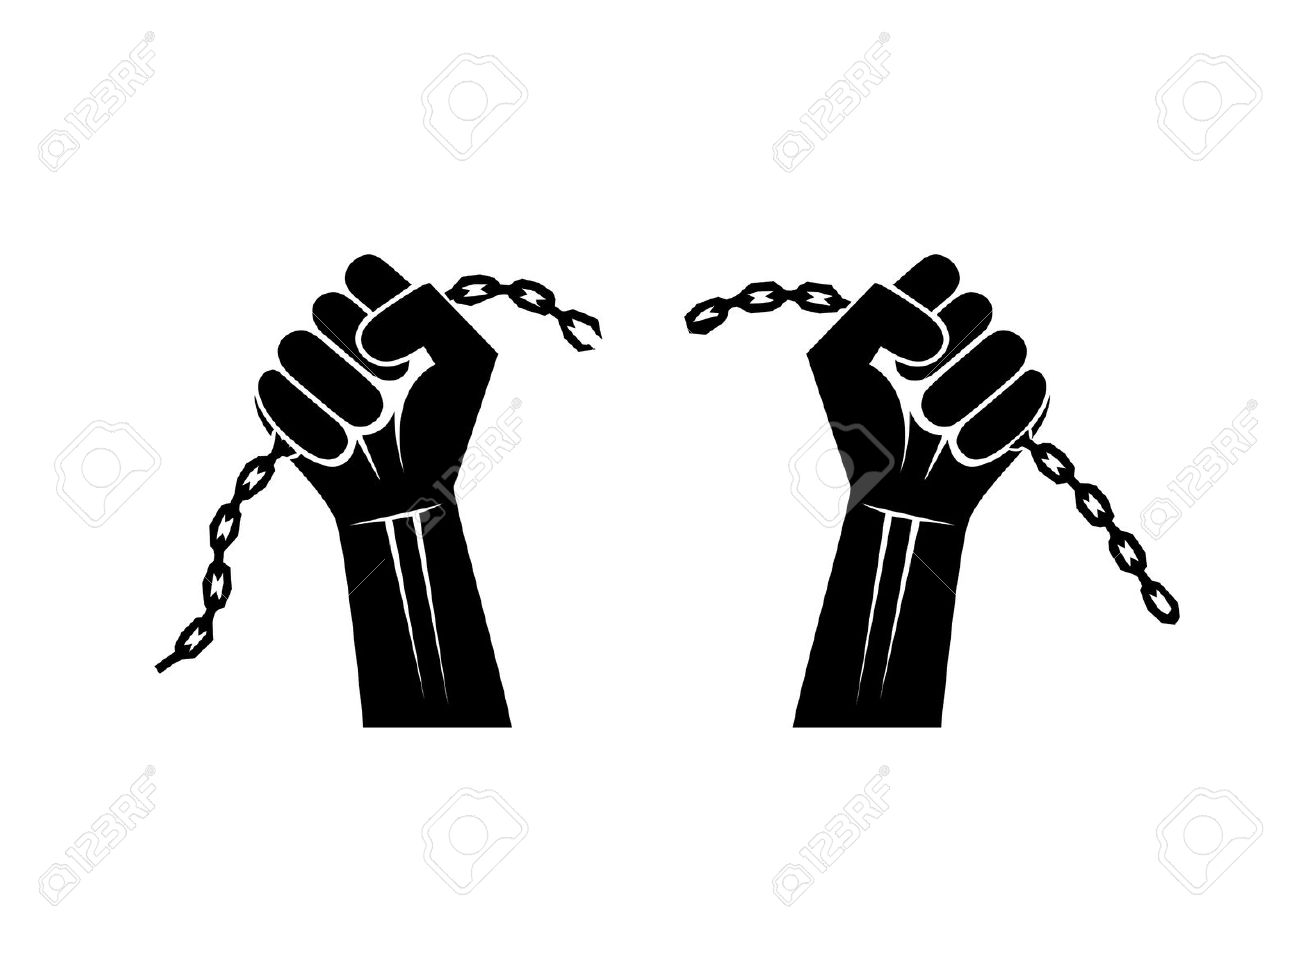 Hands breaking chains clipart.